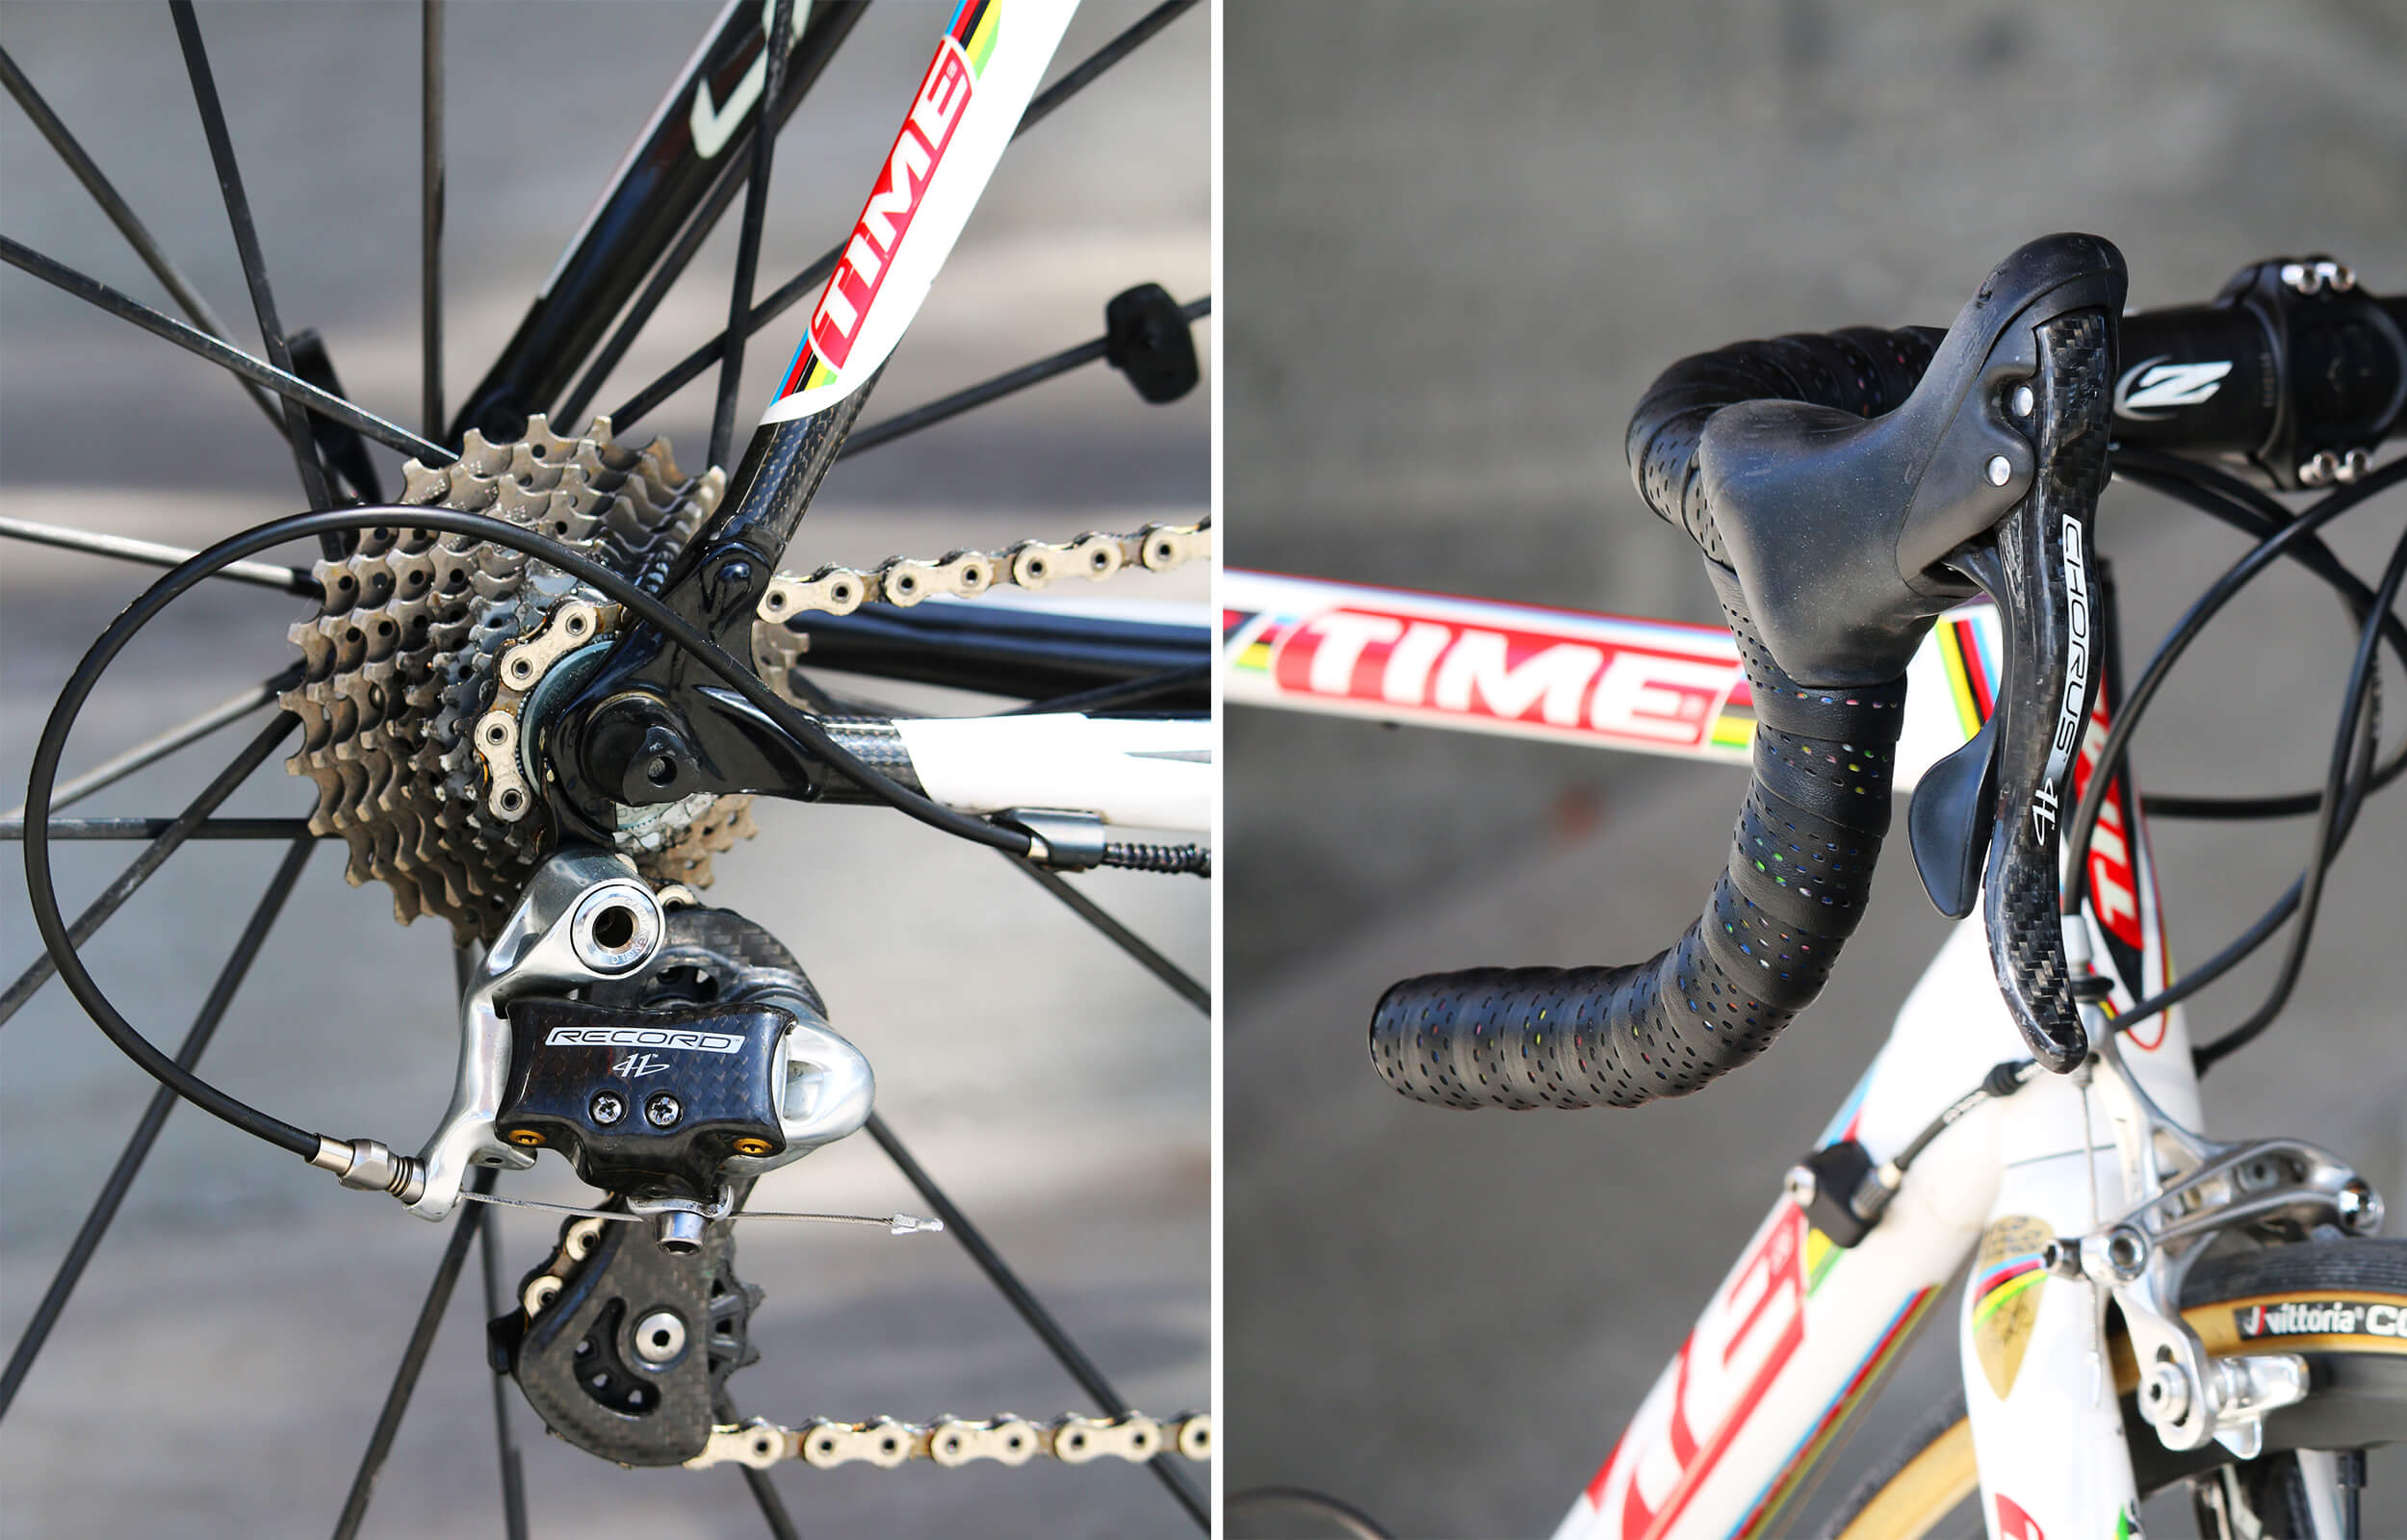 TIME VXRS Ulteam Bettini Edition - Campagnolo - Contender Bicycles